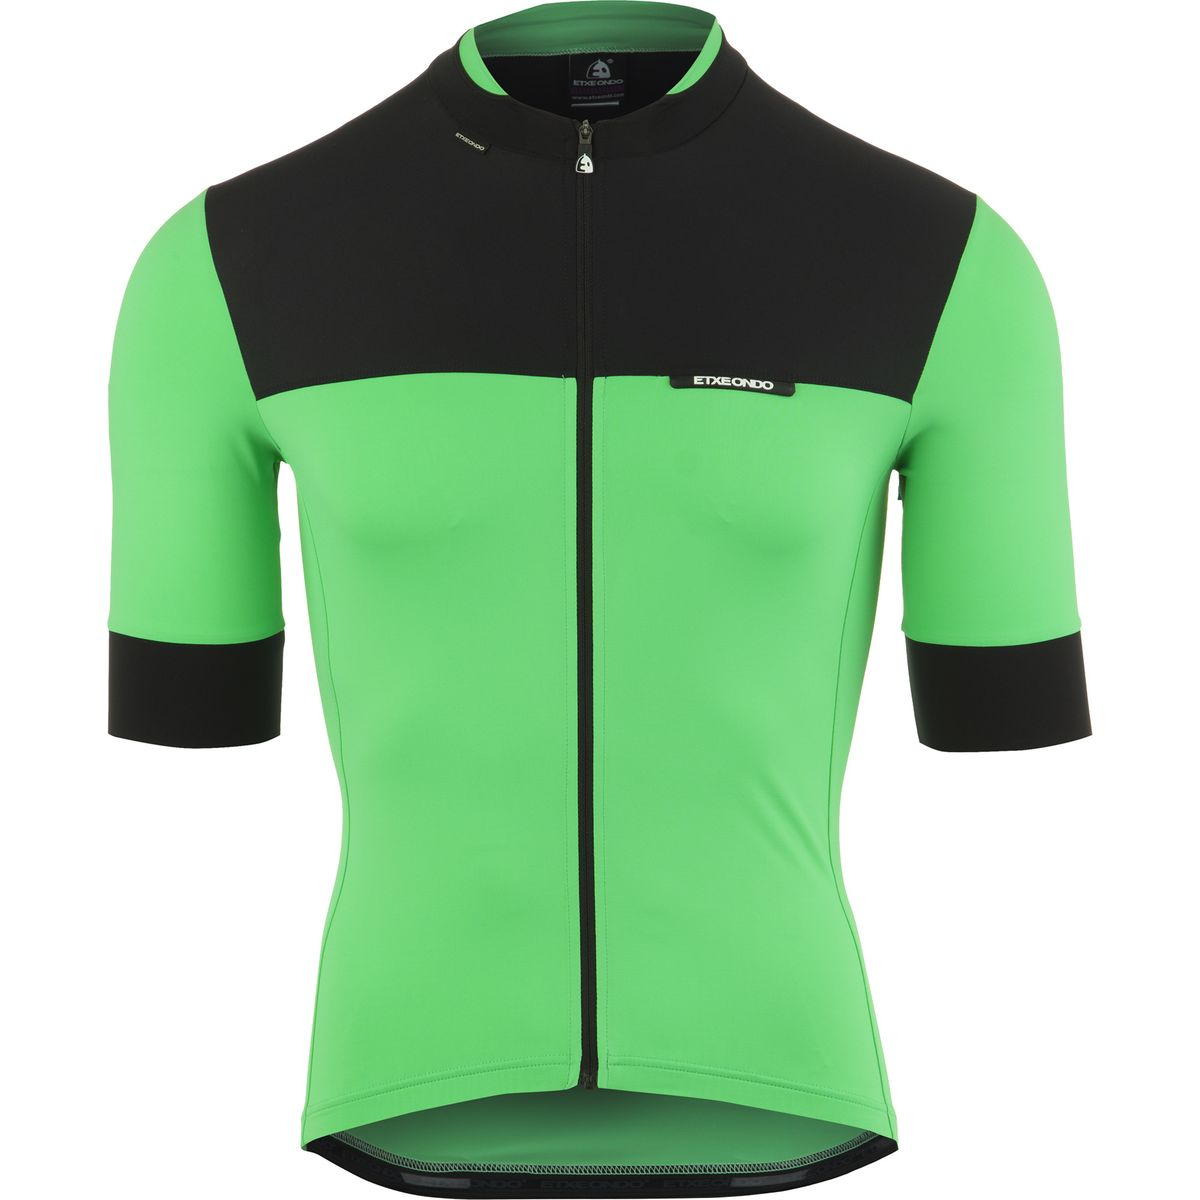 Etxeondo Rali Off Road Jersey Short Sleeve Men's